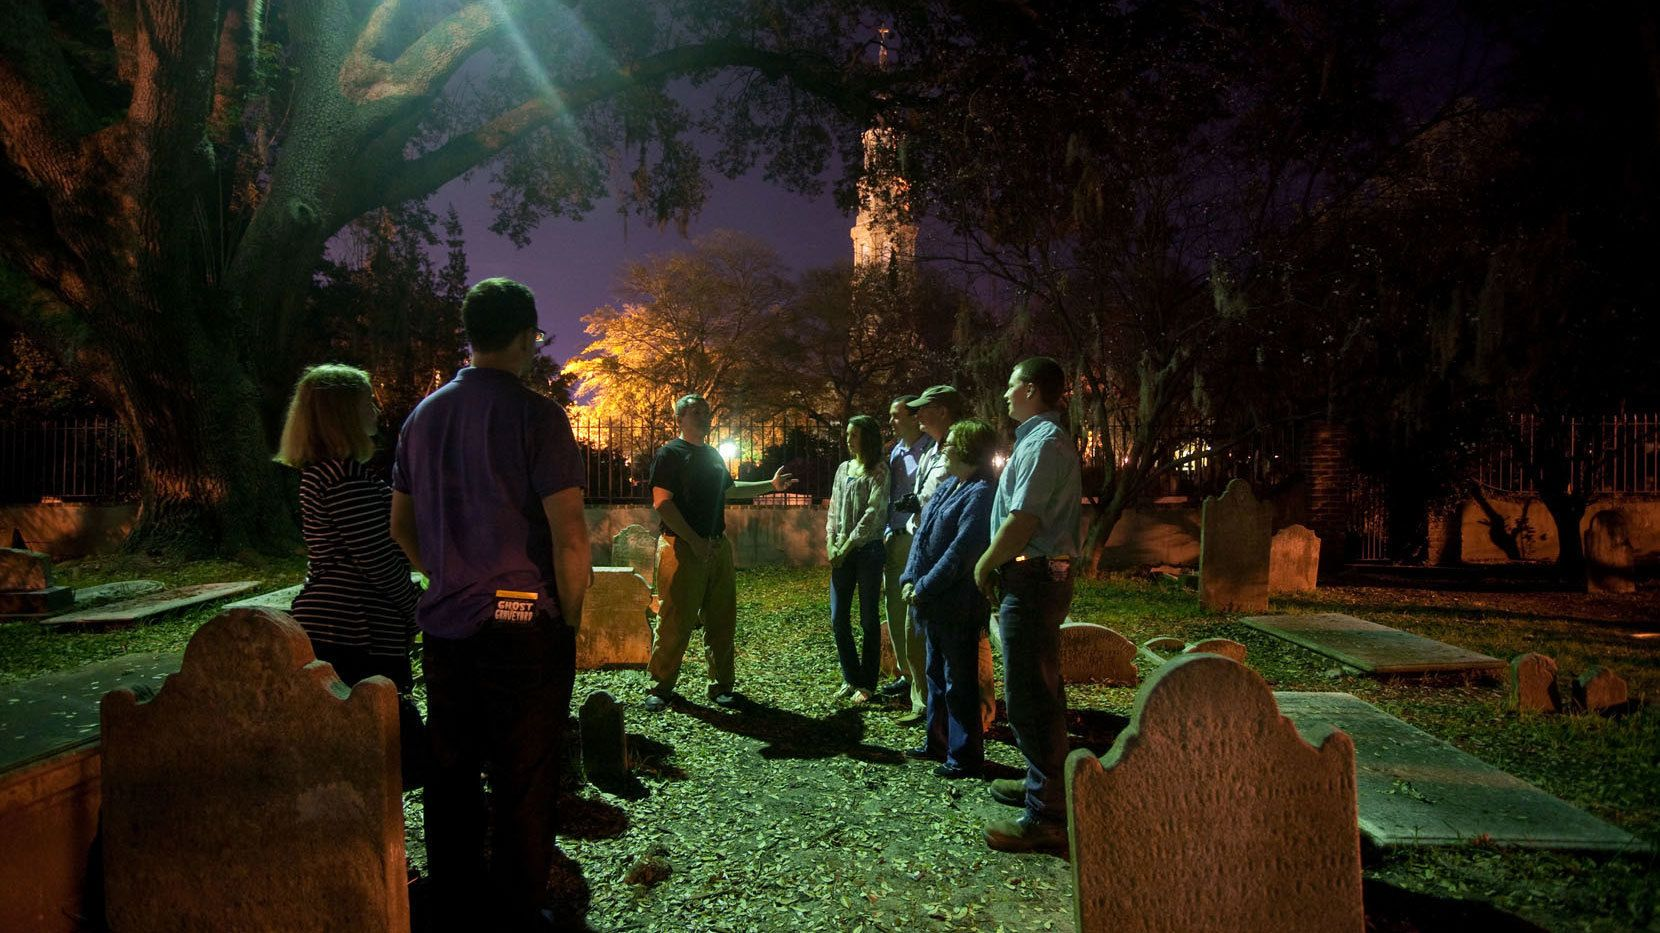 Tour group surrounded by tombstones at a graveyard in Charleston at night